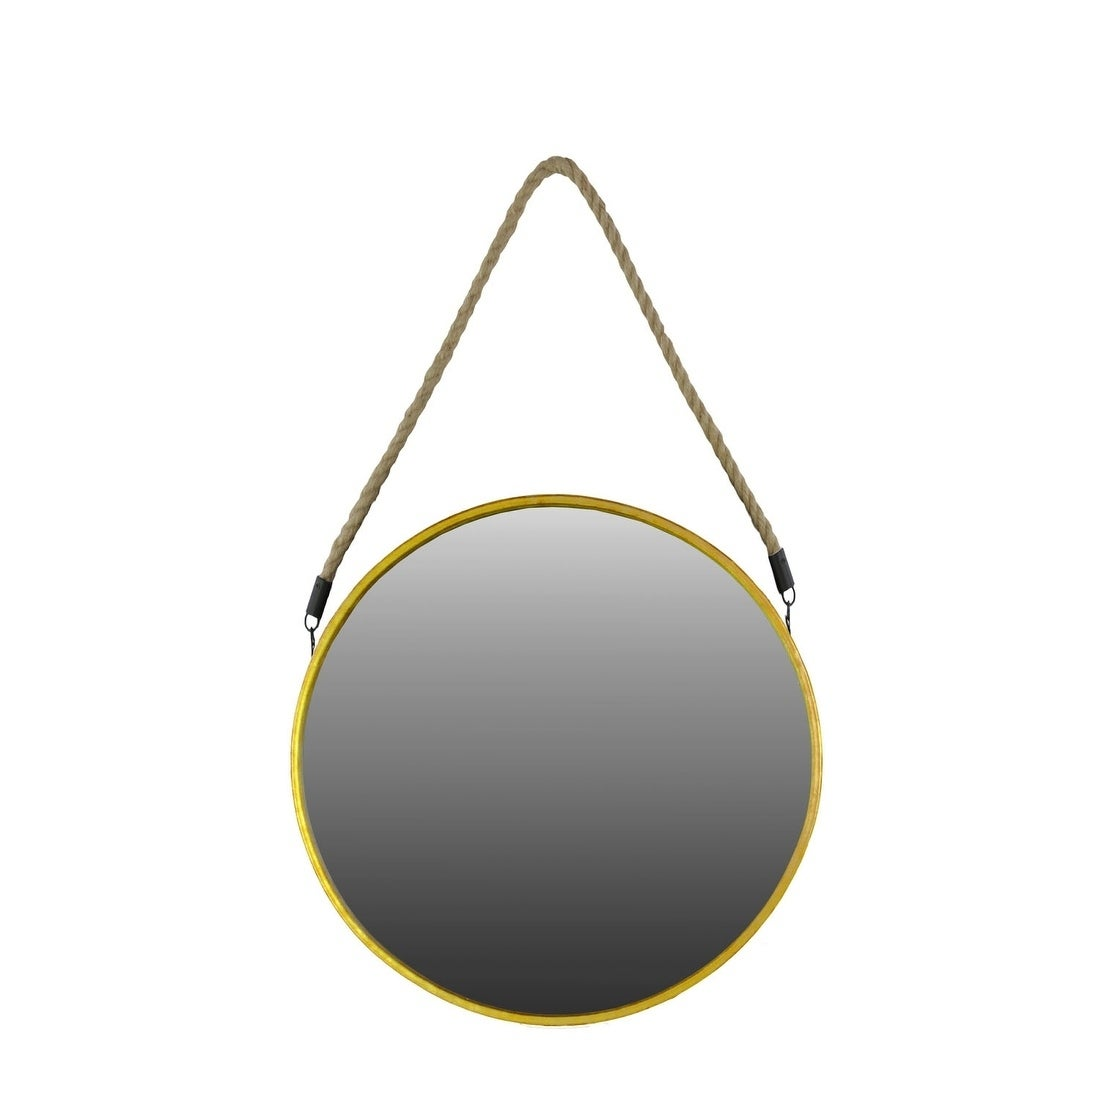 Shop Urban Trends Metal Round Mirror With Rope Hanger In Metallic Finish Large Antique Gold Antique Gold On Sale Overstock 27358806